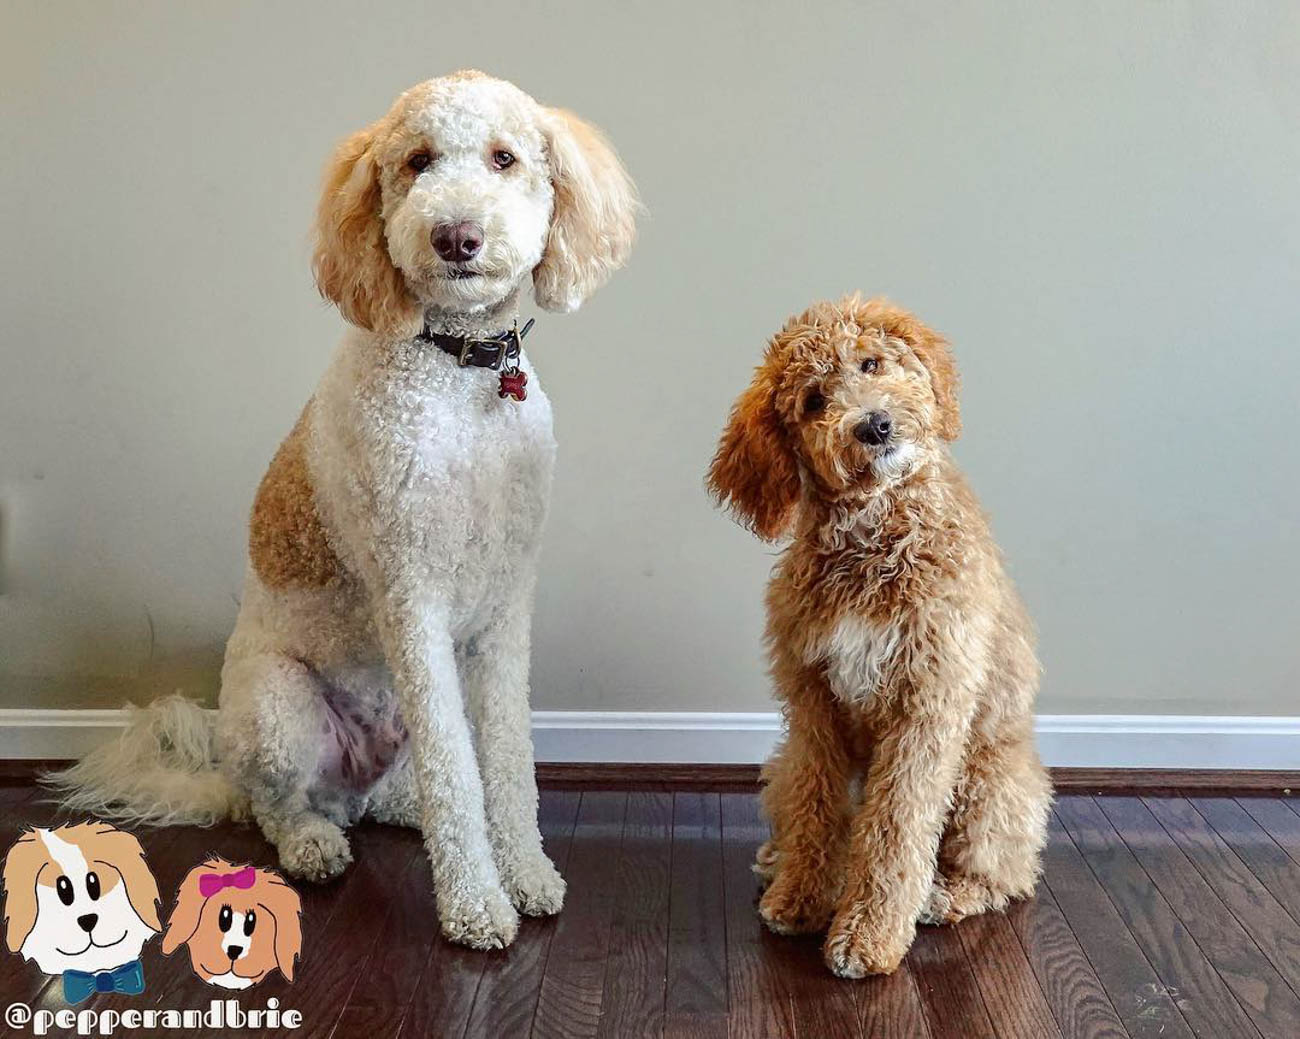 Pepper and Brie are Standard Goldendoodles who are siblings and best friends. / Image courtesy of Instagram user @pepperandbrie // Published: 11.28.18